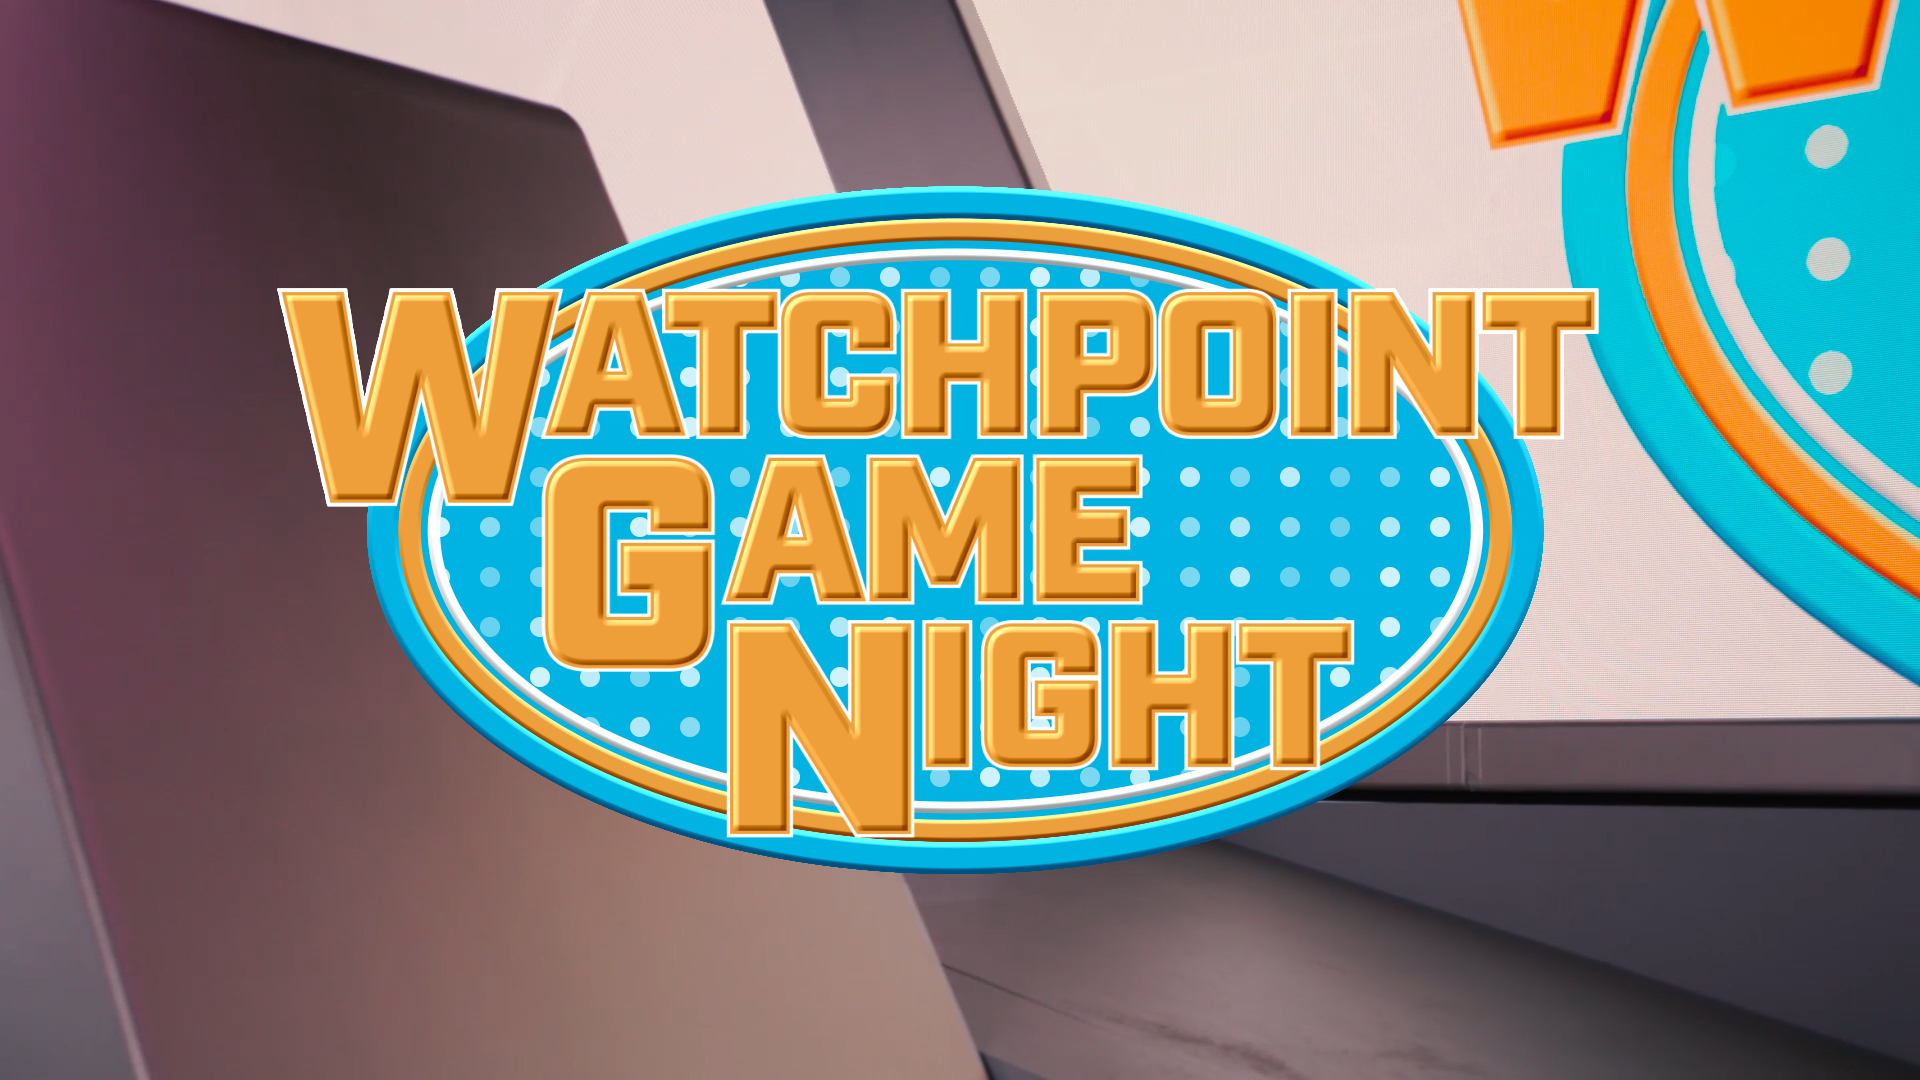 Watchpoint Game Night Part 1